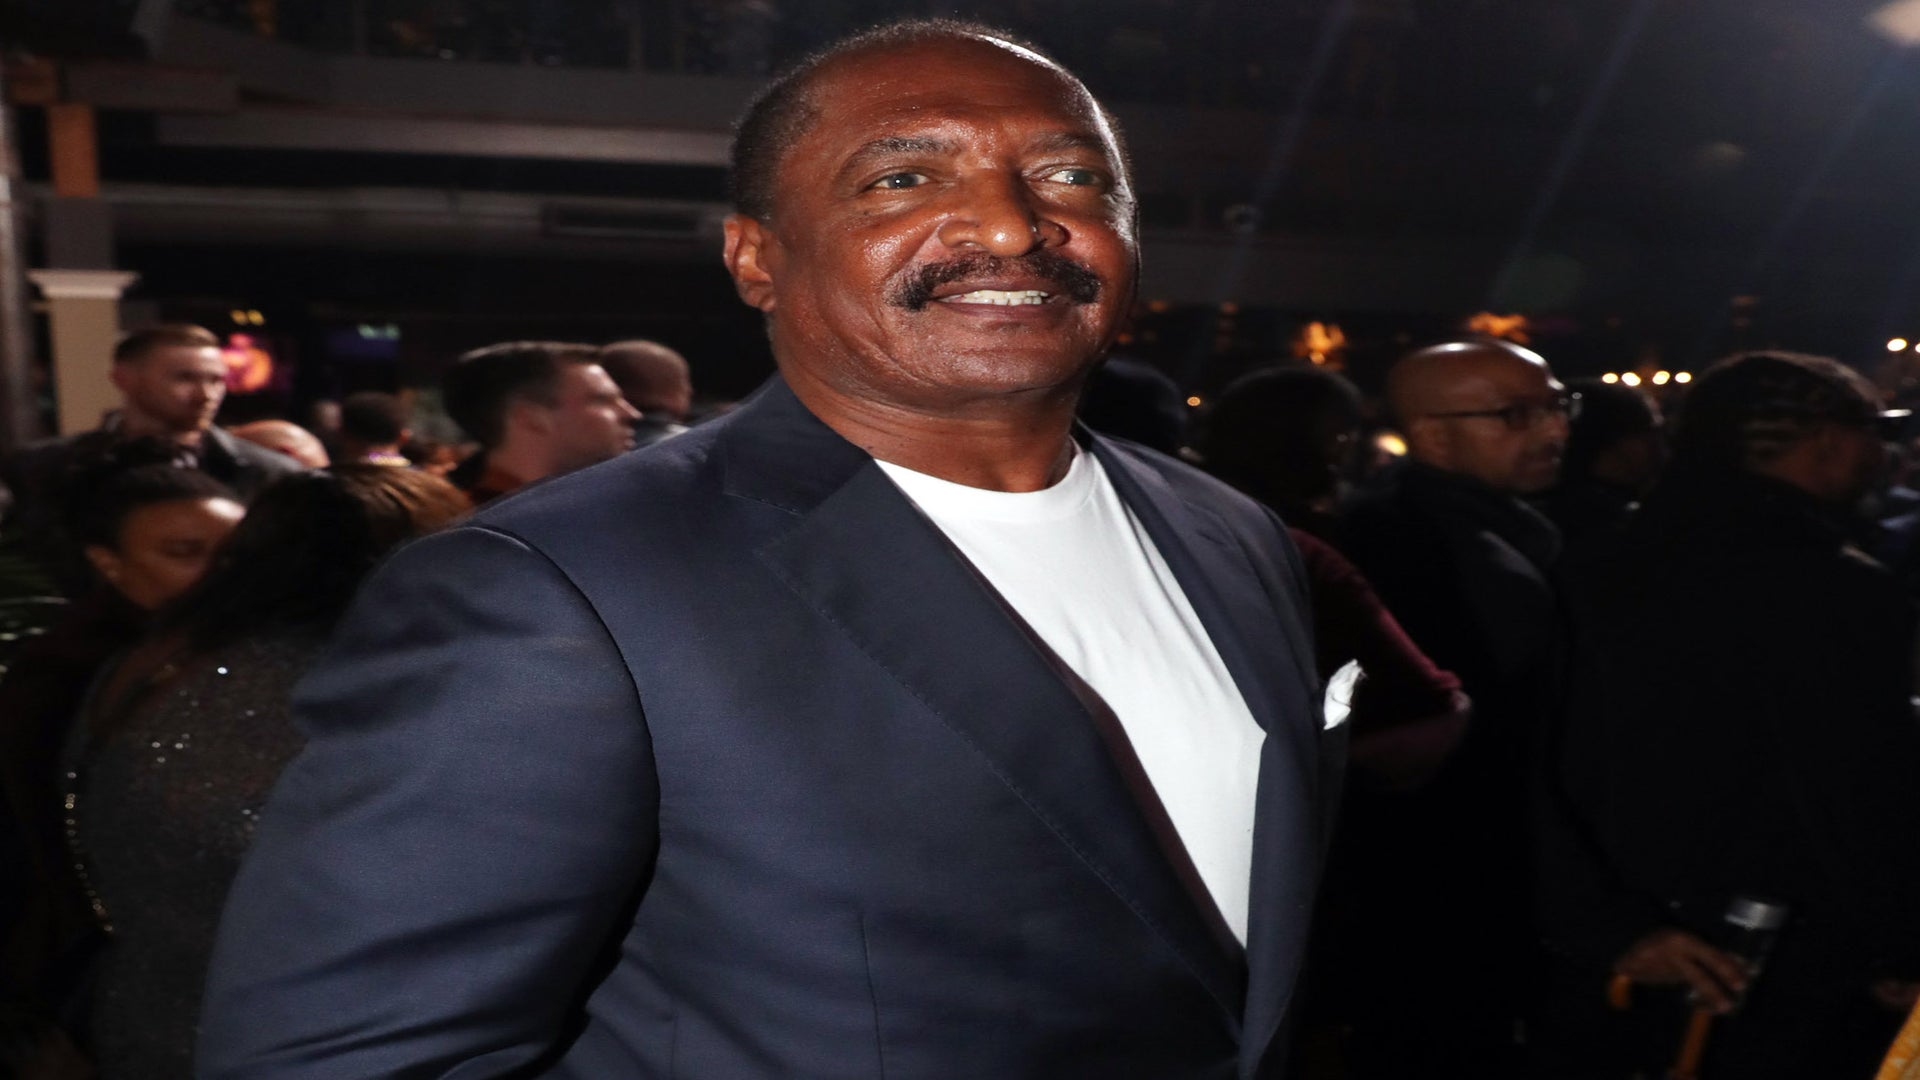 Mathew Knowles Finally Comments On That Infamous Elevator Fight Between JAY-Z And Solange